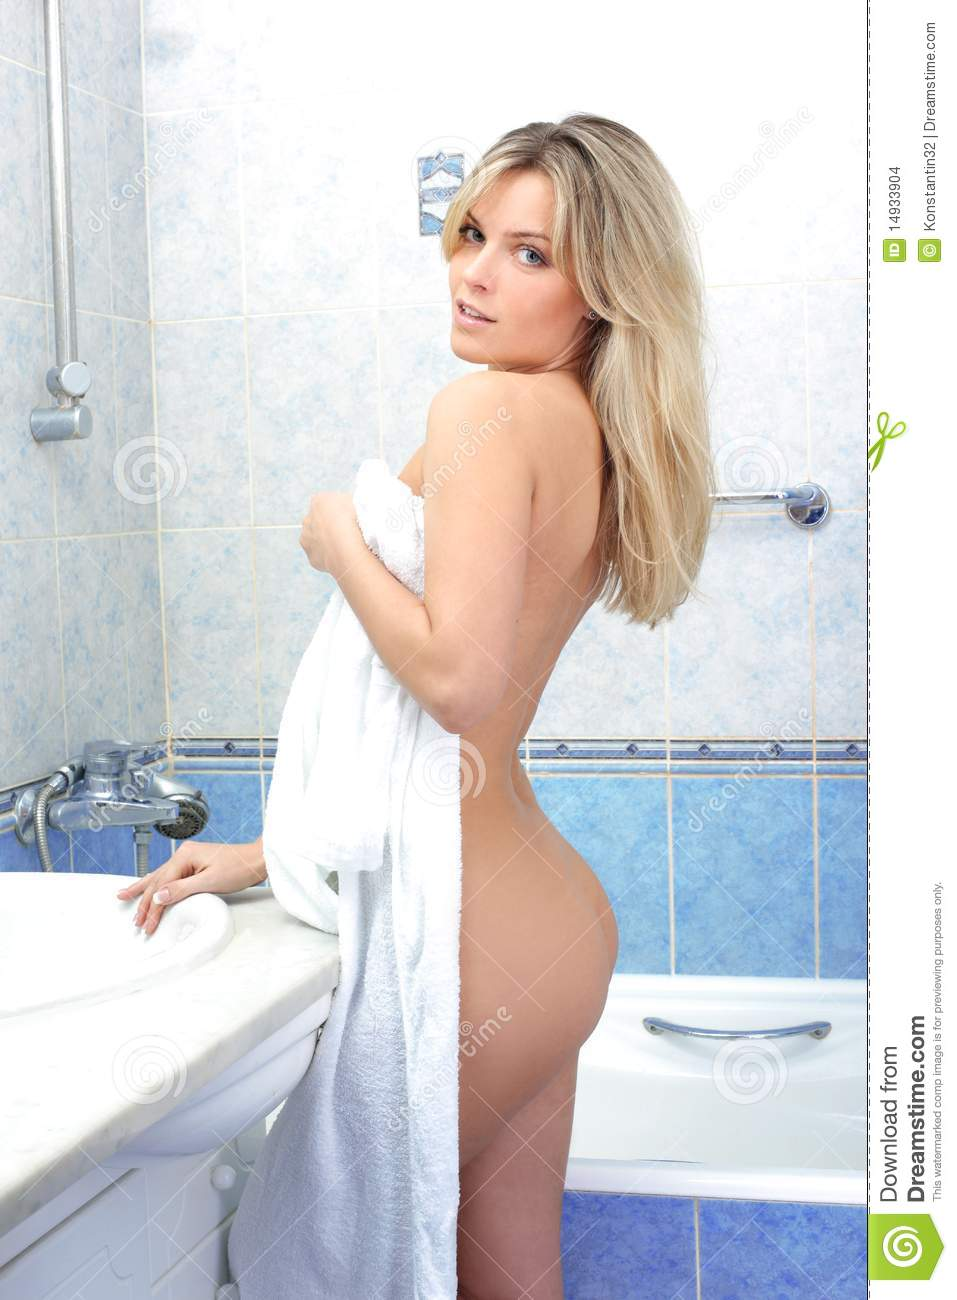 Woman In Shower Undressing Videos 18